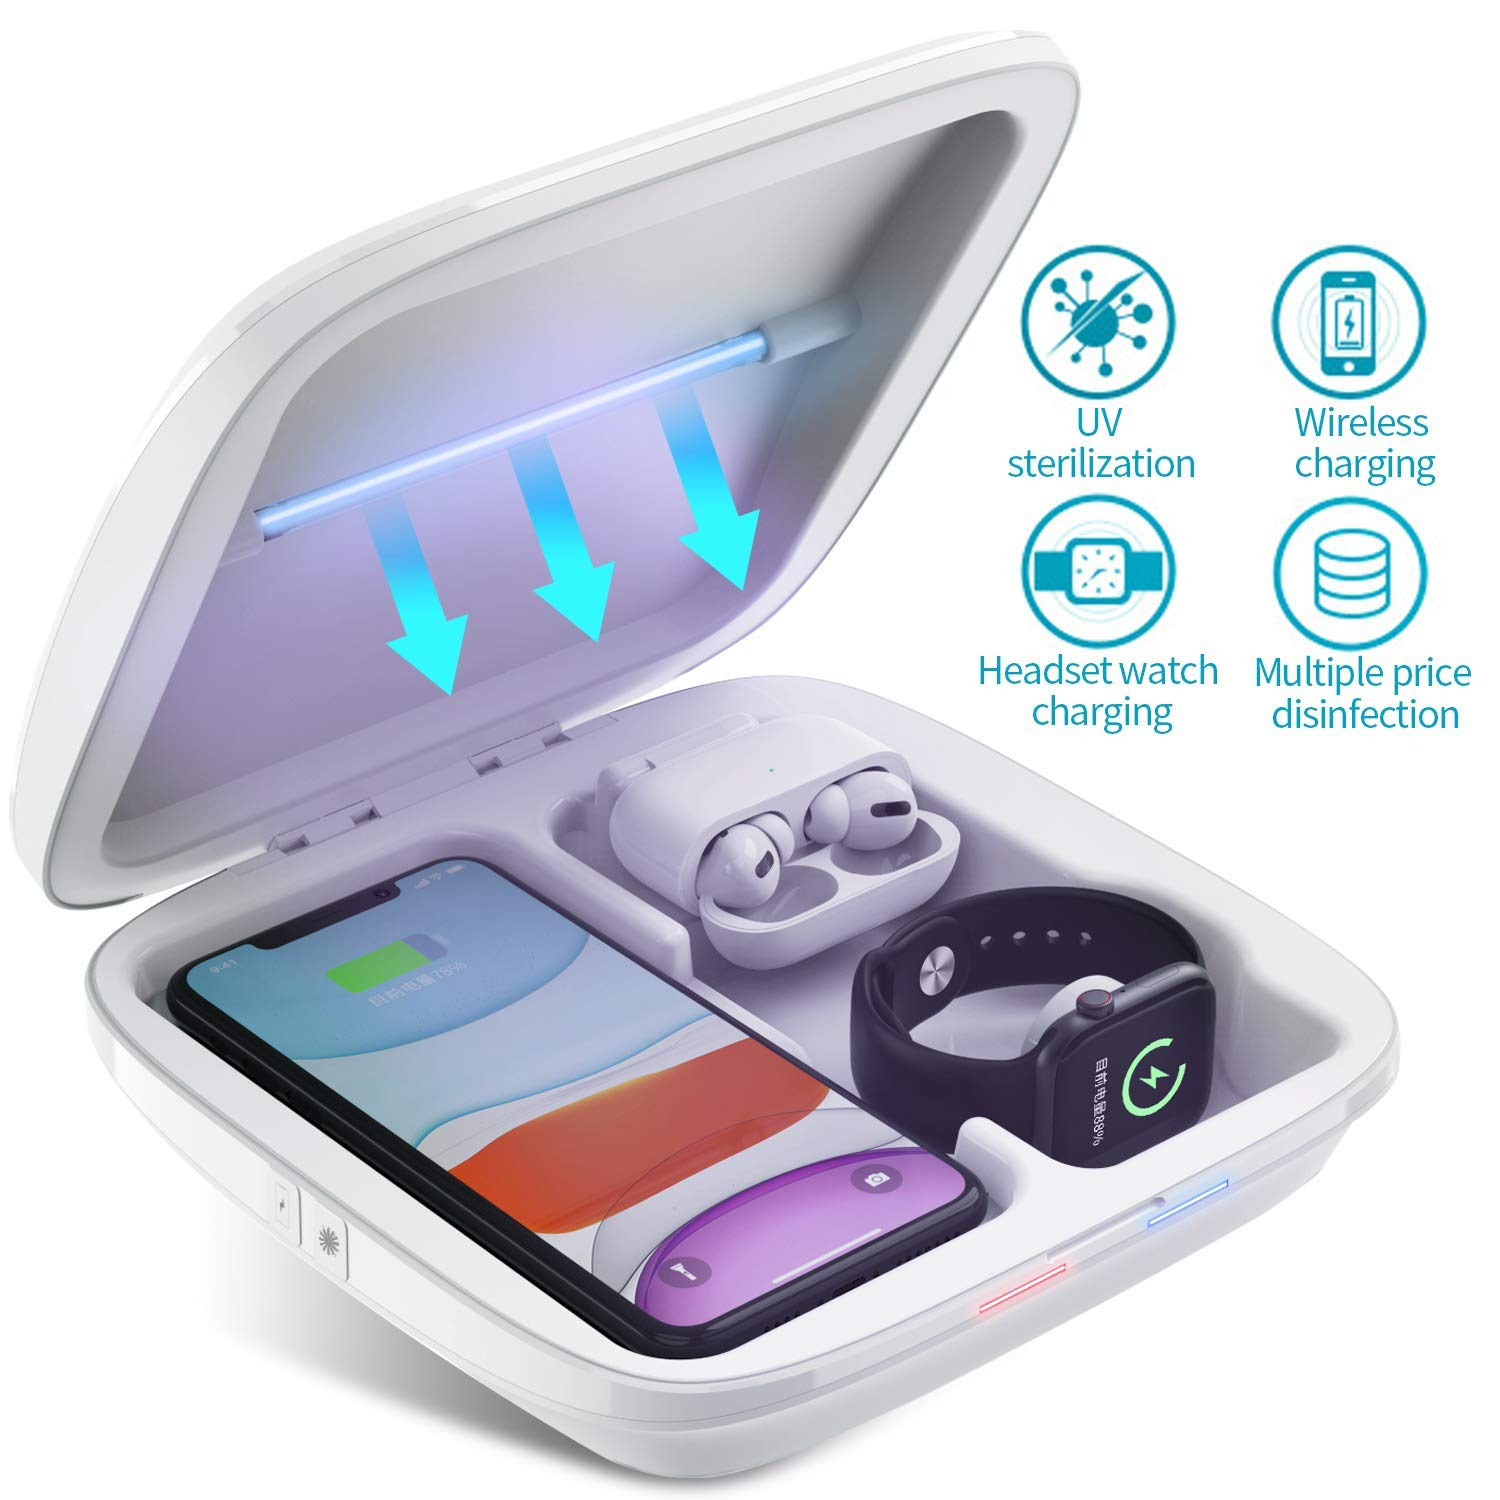 UV Cell Phone Sanitizer, Multi-Function Wireless Charger Portable UV Light Sanitizer 3-in-1 UV Cleaner Box for All Smart Phone, Headset, Jewelry, Watch, Glasses (4-White)